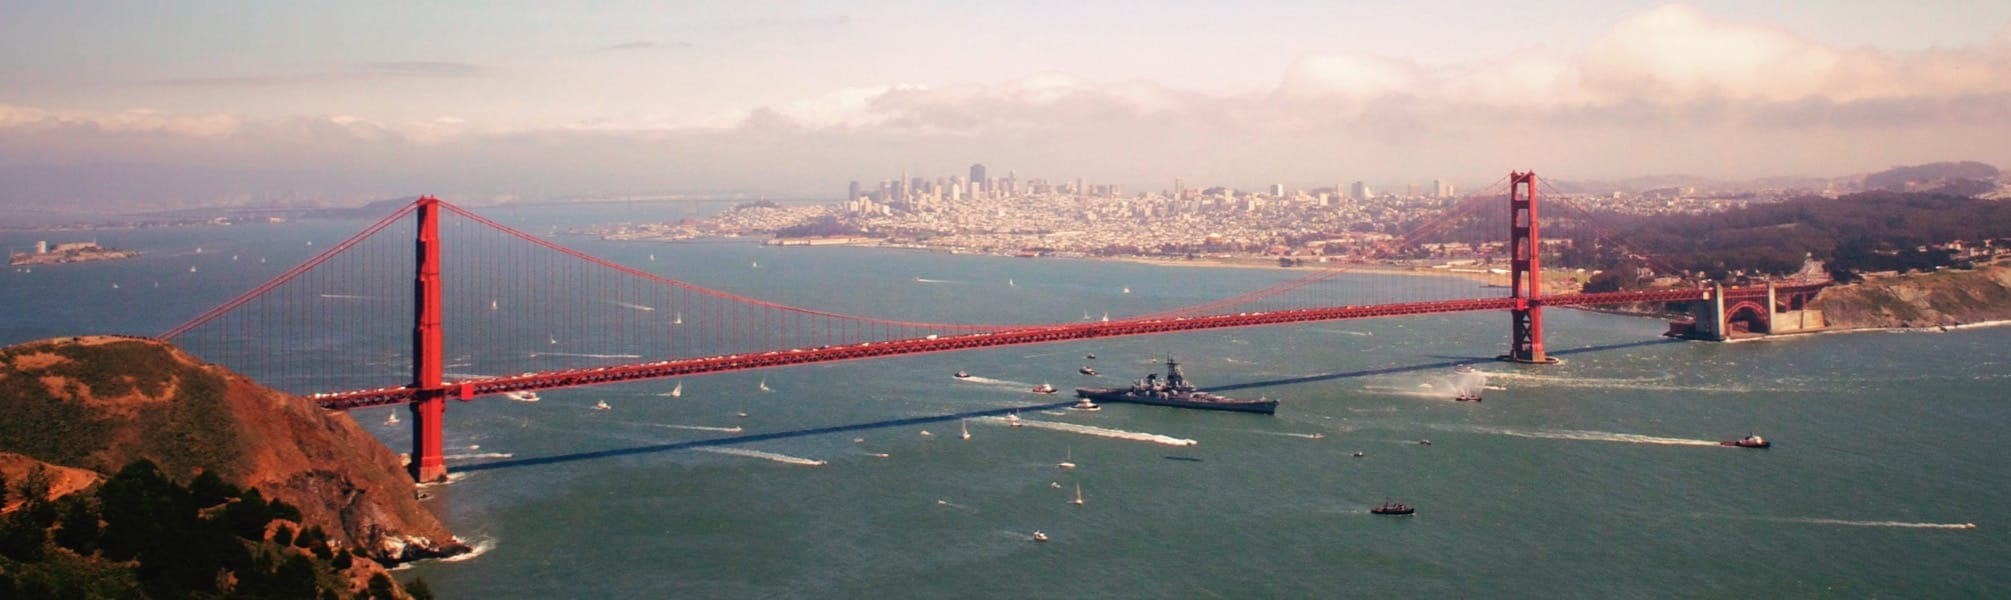 Golden Gate Bridge, with USS Iowa passing through